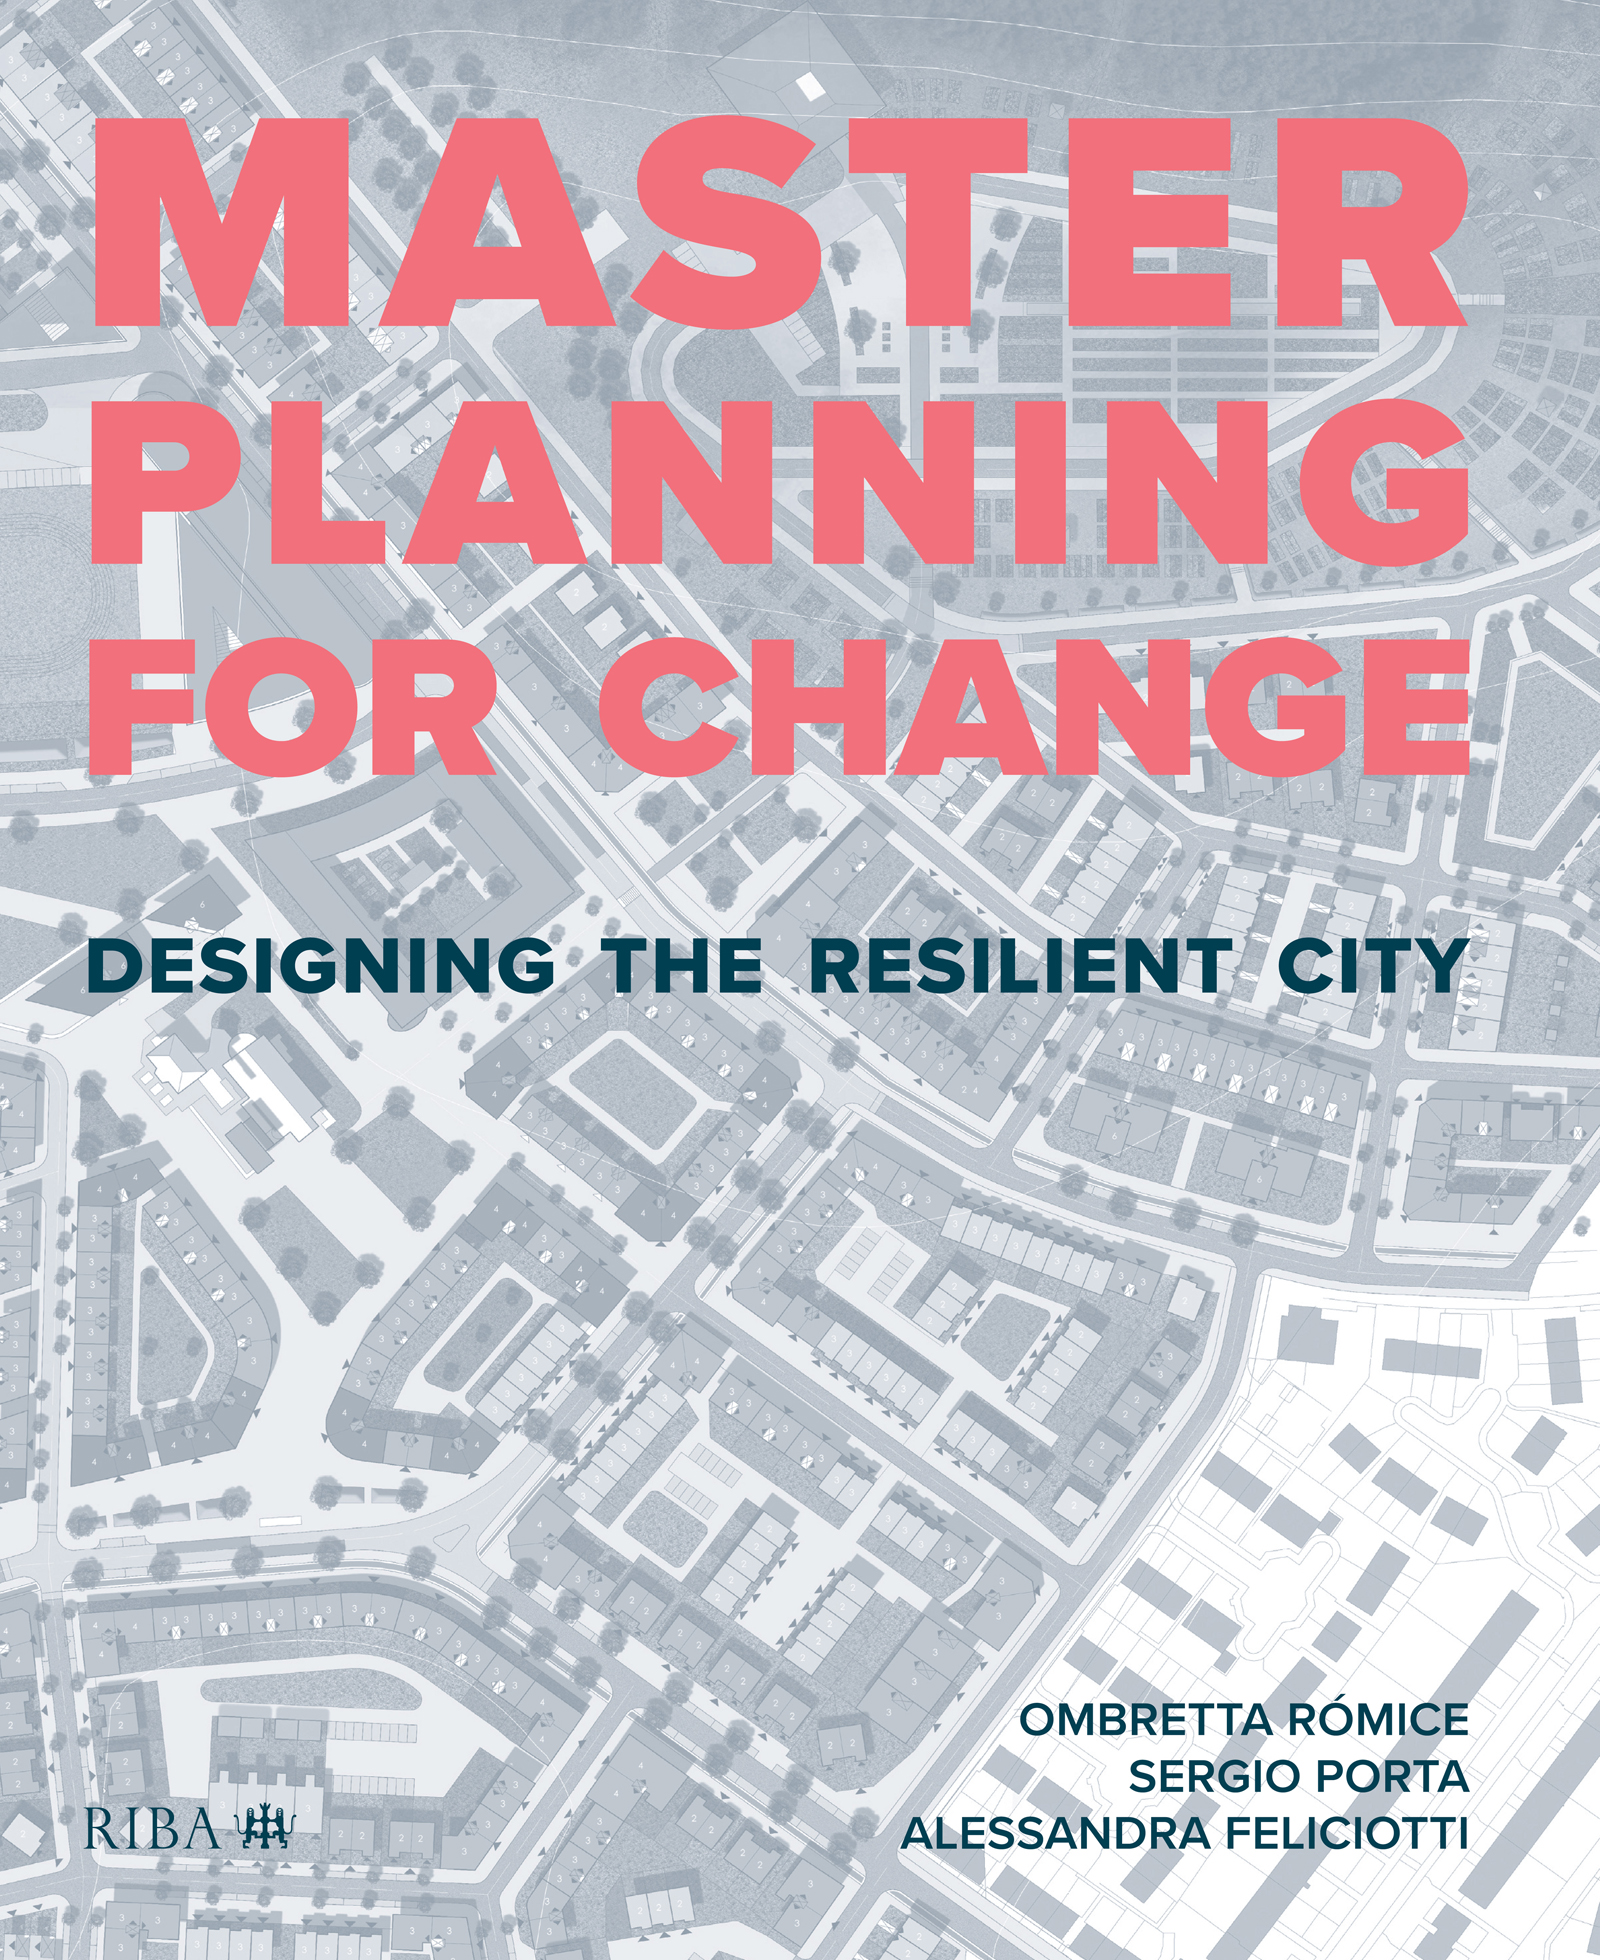 Masterplanning for Change